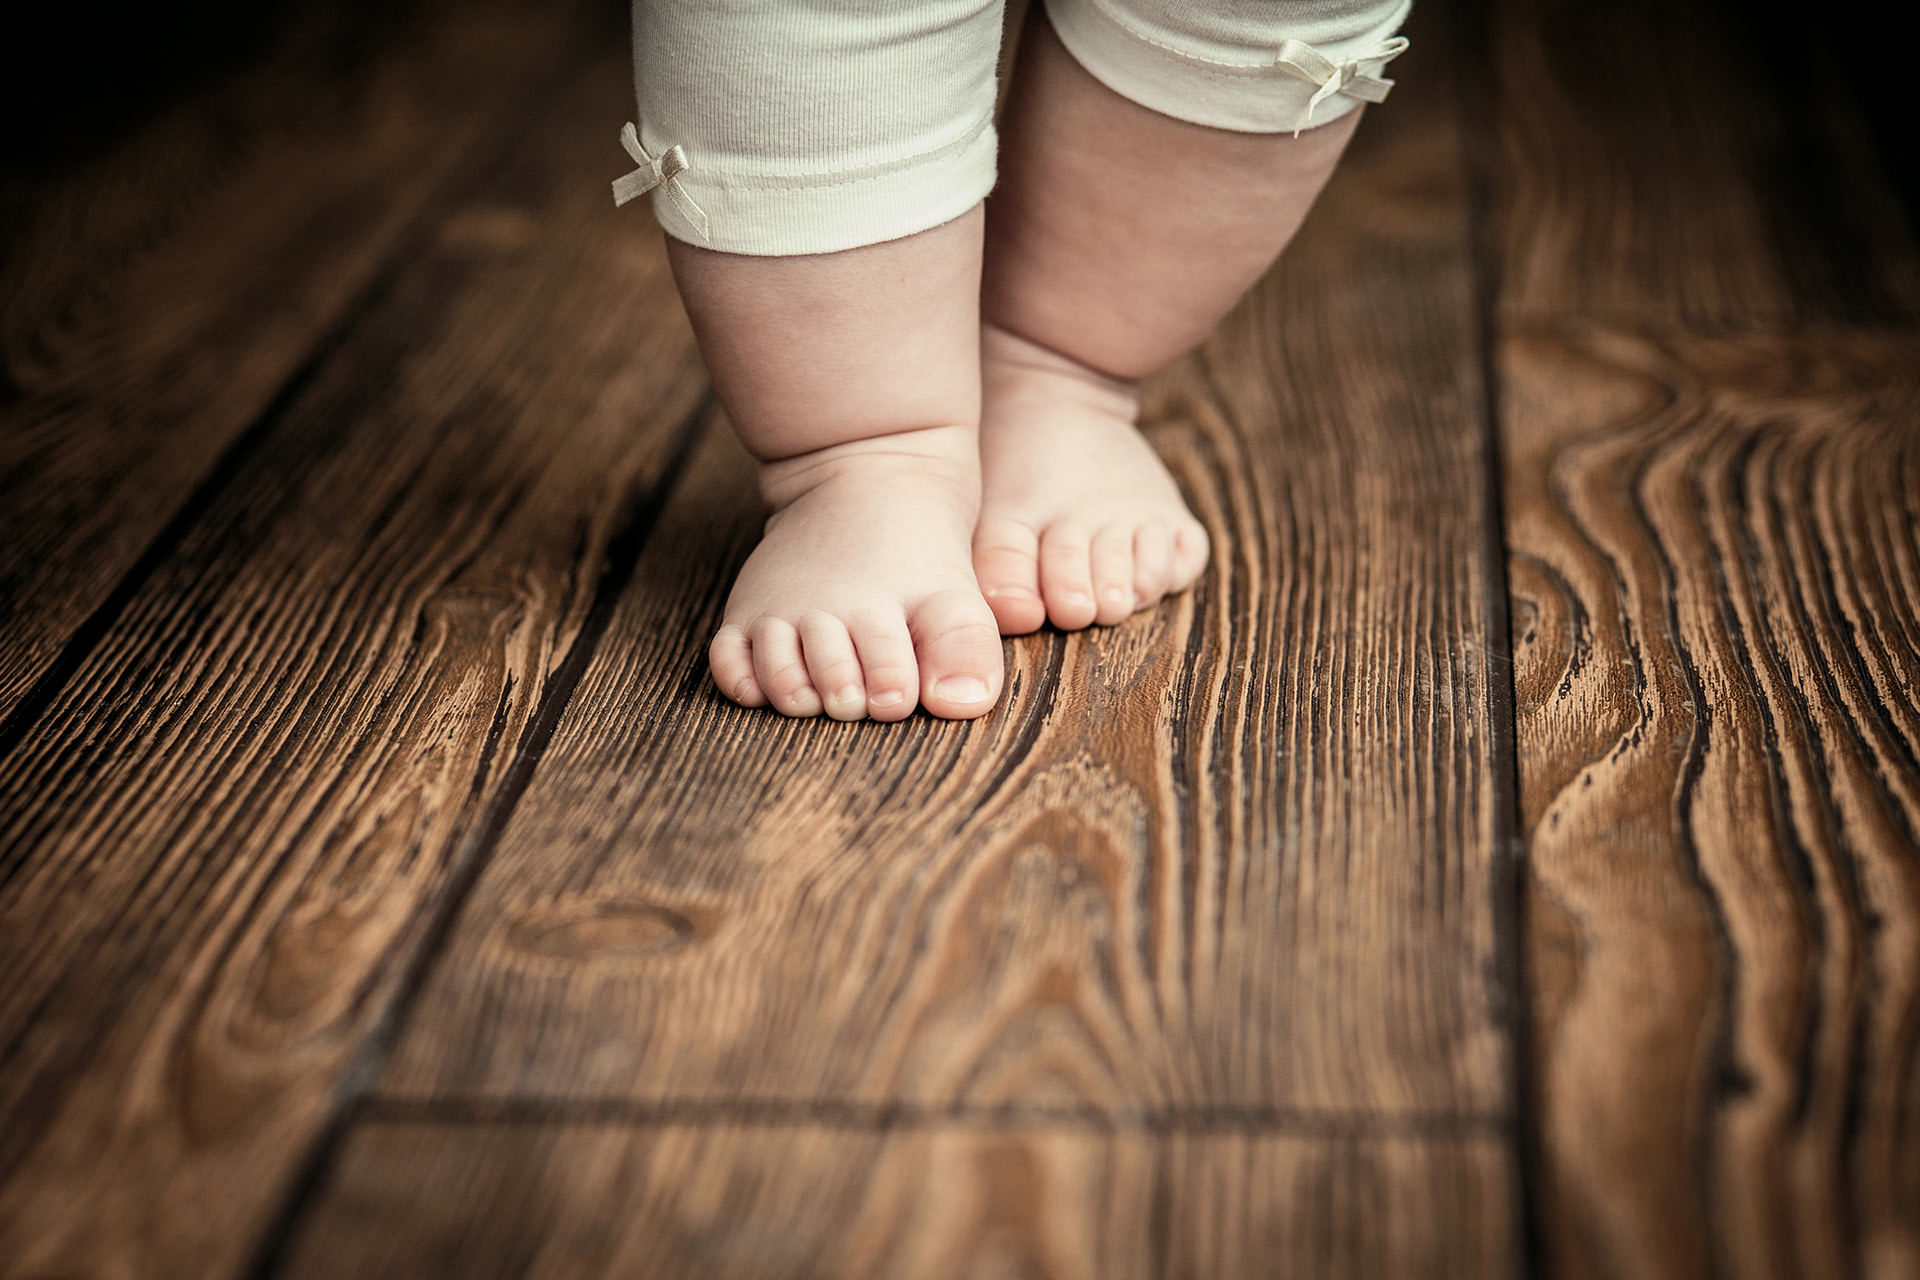 Baby feet doing the first steps. Baby's first steps.